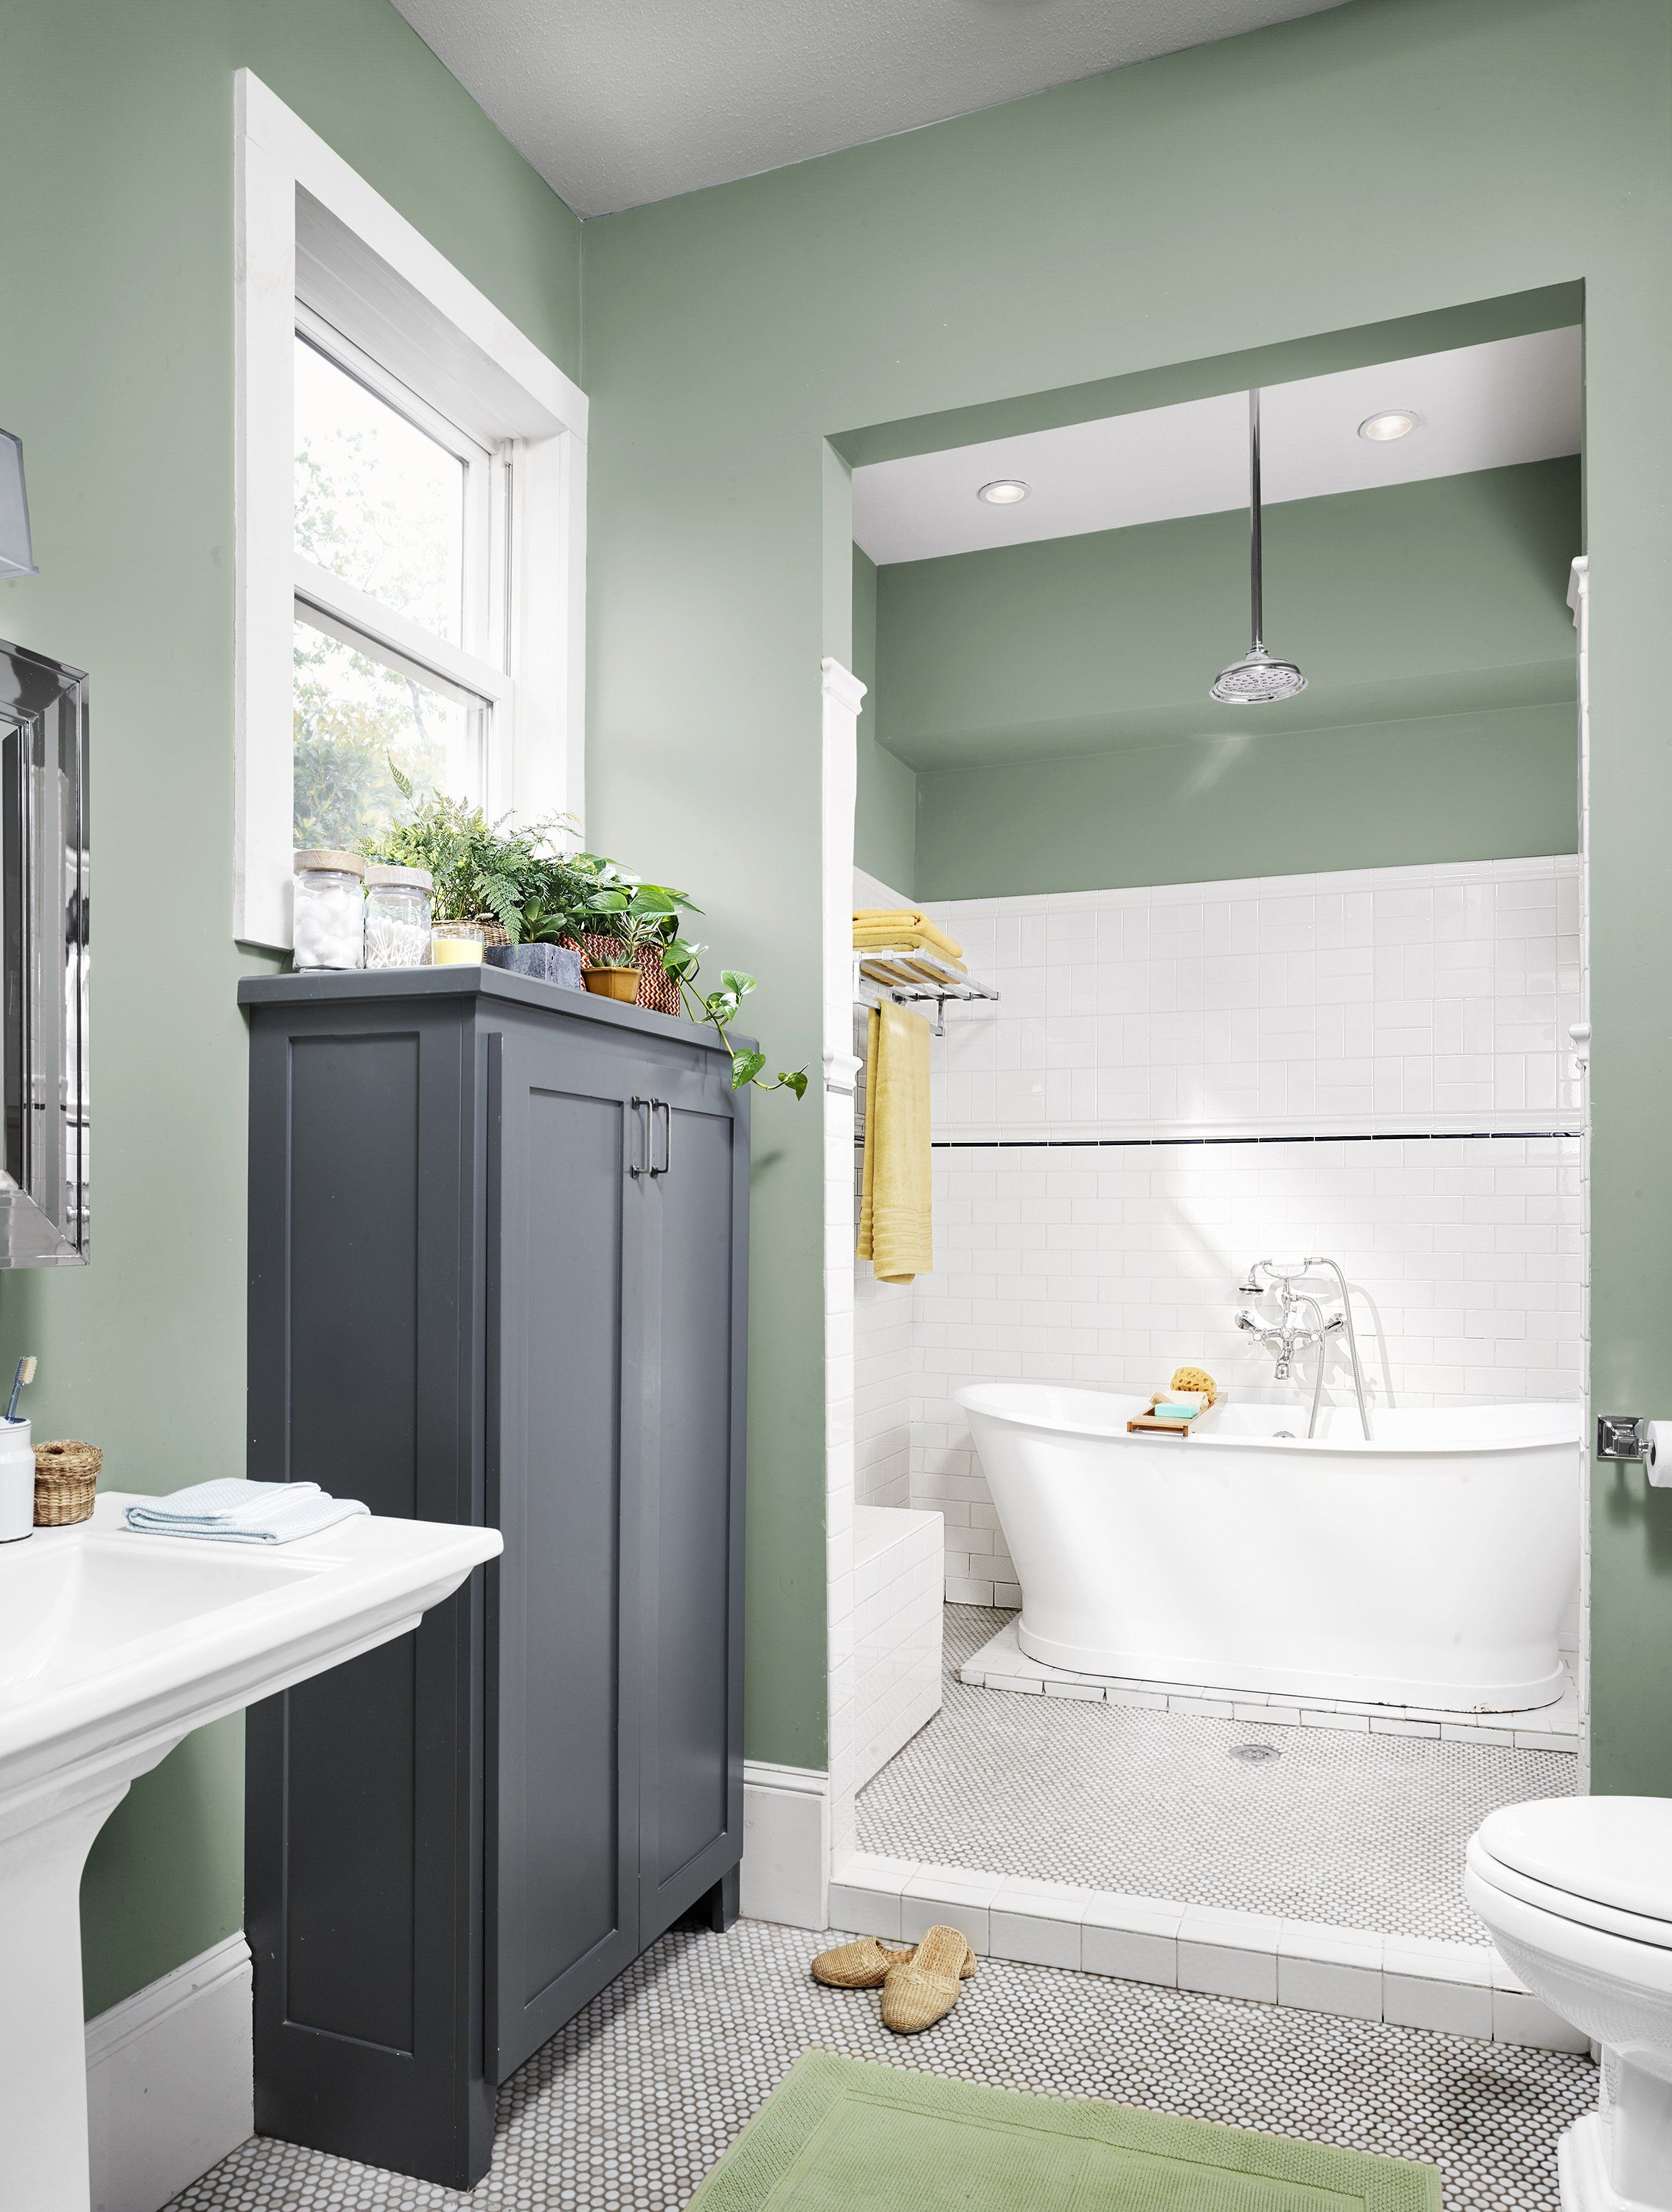 A Bathroom Addition Offers The Opportunity For An Open And Inviting Shower Space Wet Rooms Bathroom Redesign Wet Room Shower